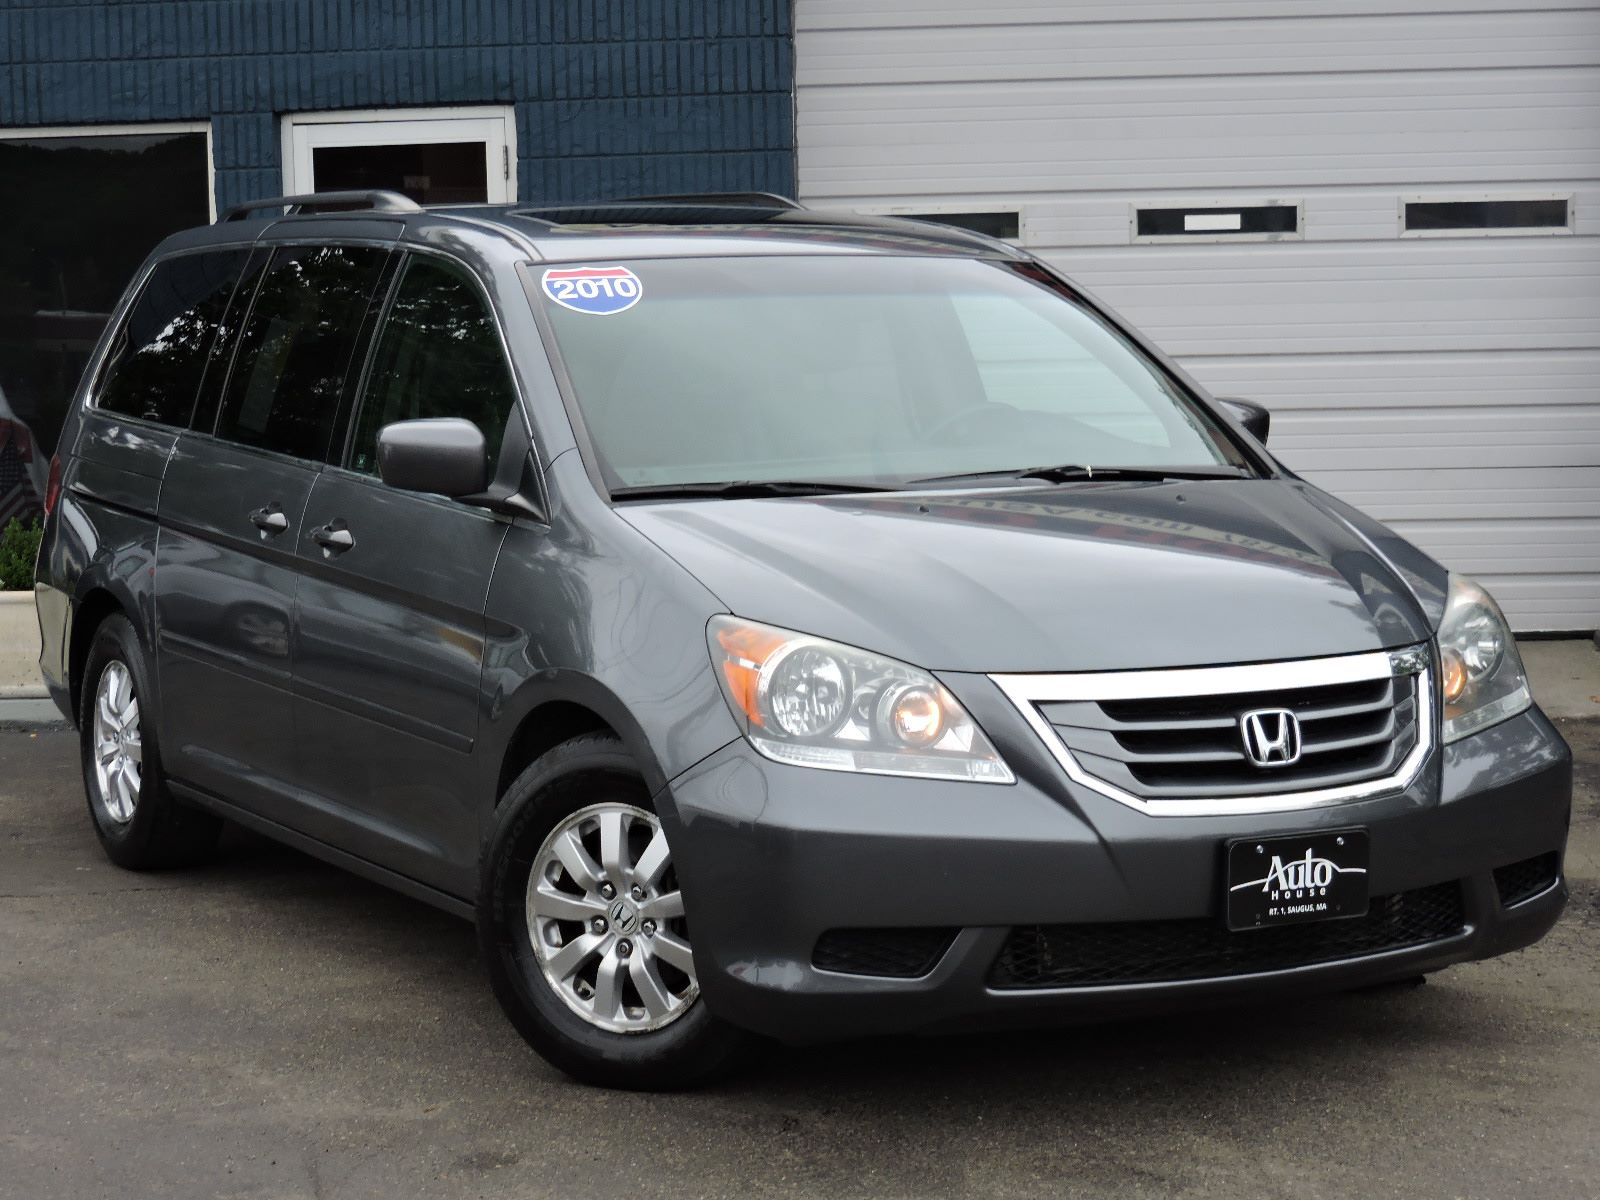 pacifica chrysler cancercells vs price odyssey honda lovely cars pare invoice of